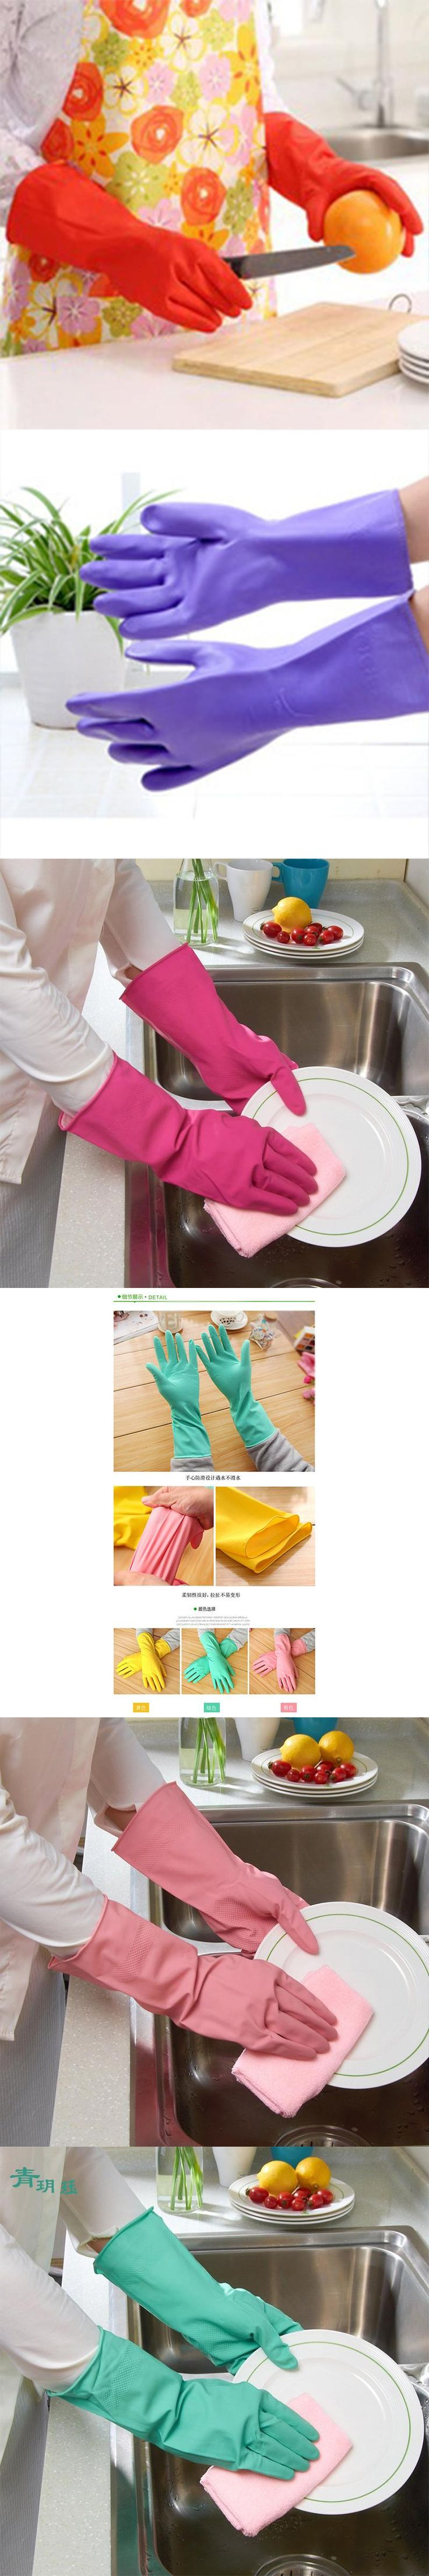 Home Cleaning Gloves New Creative Disposable Latex Gloves For Home Cleaning Garden Gloves Food Universal For Industrious Woman